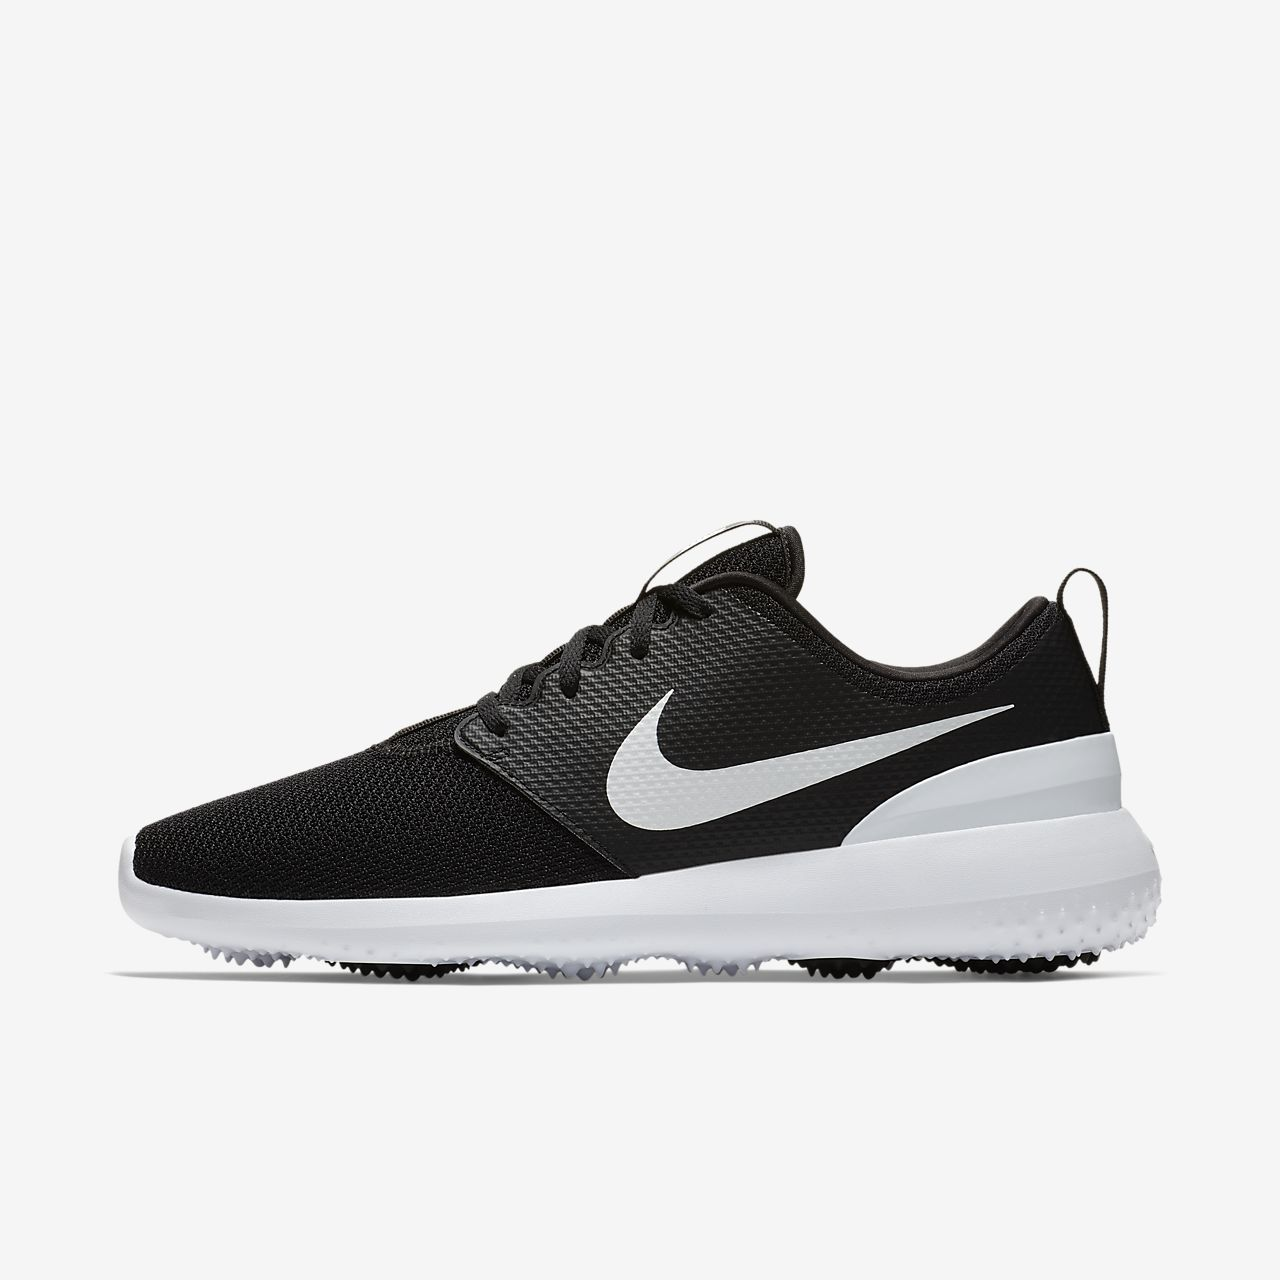 db4f9c60966c7 Nike Roshe G Men s Golf Shoe. Nike.com